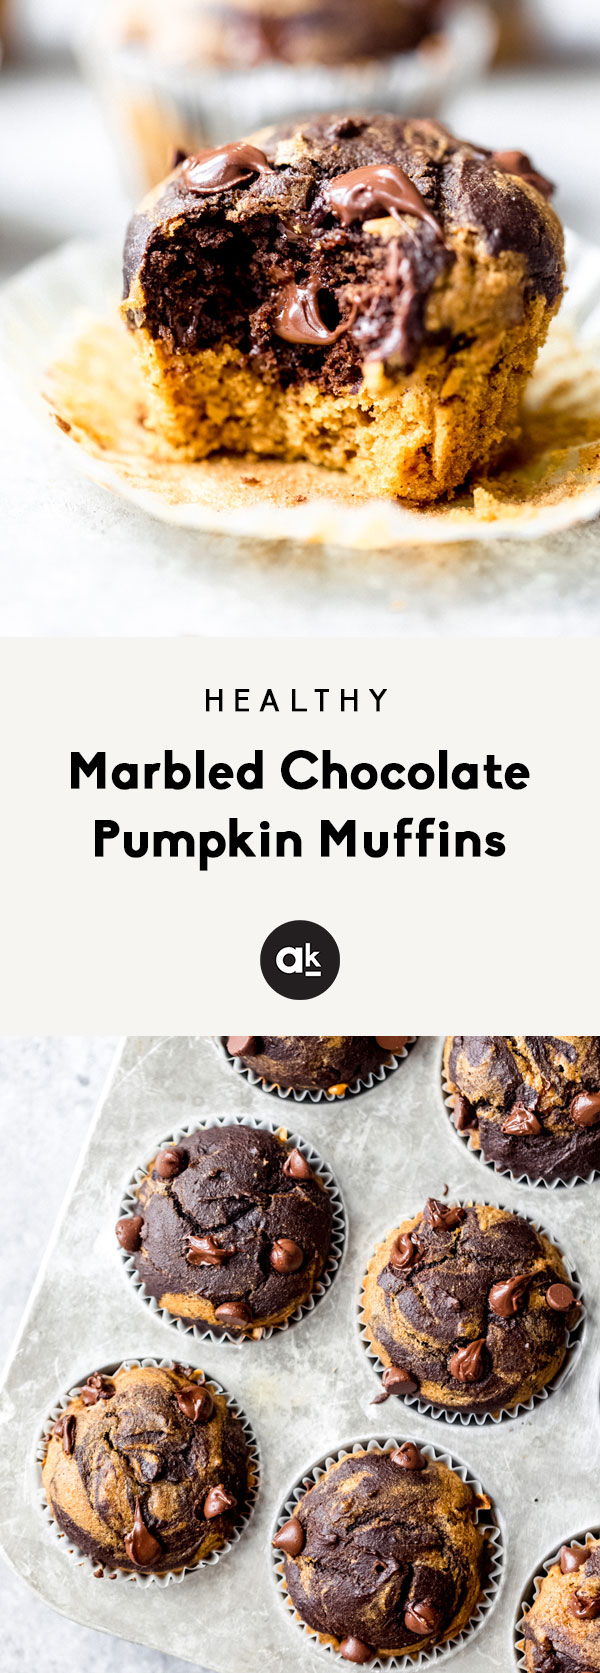 Incredibly fluffy marbled chocolate pumpkin muffins swirled with pumpkin spice batter and chocolate chip chocolate batter. These muffins are made with wholesome ingredients and make the perfect snack or healthier treat.